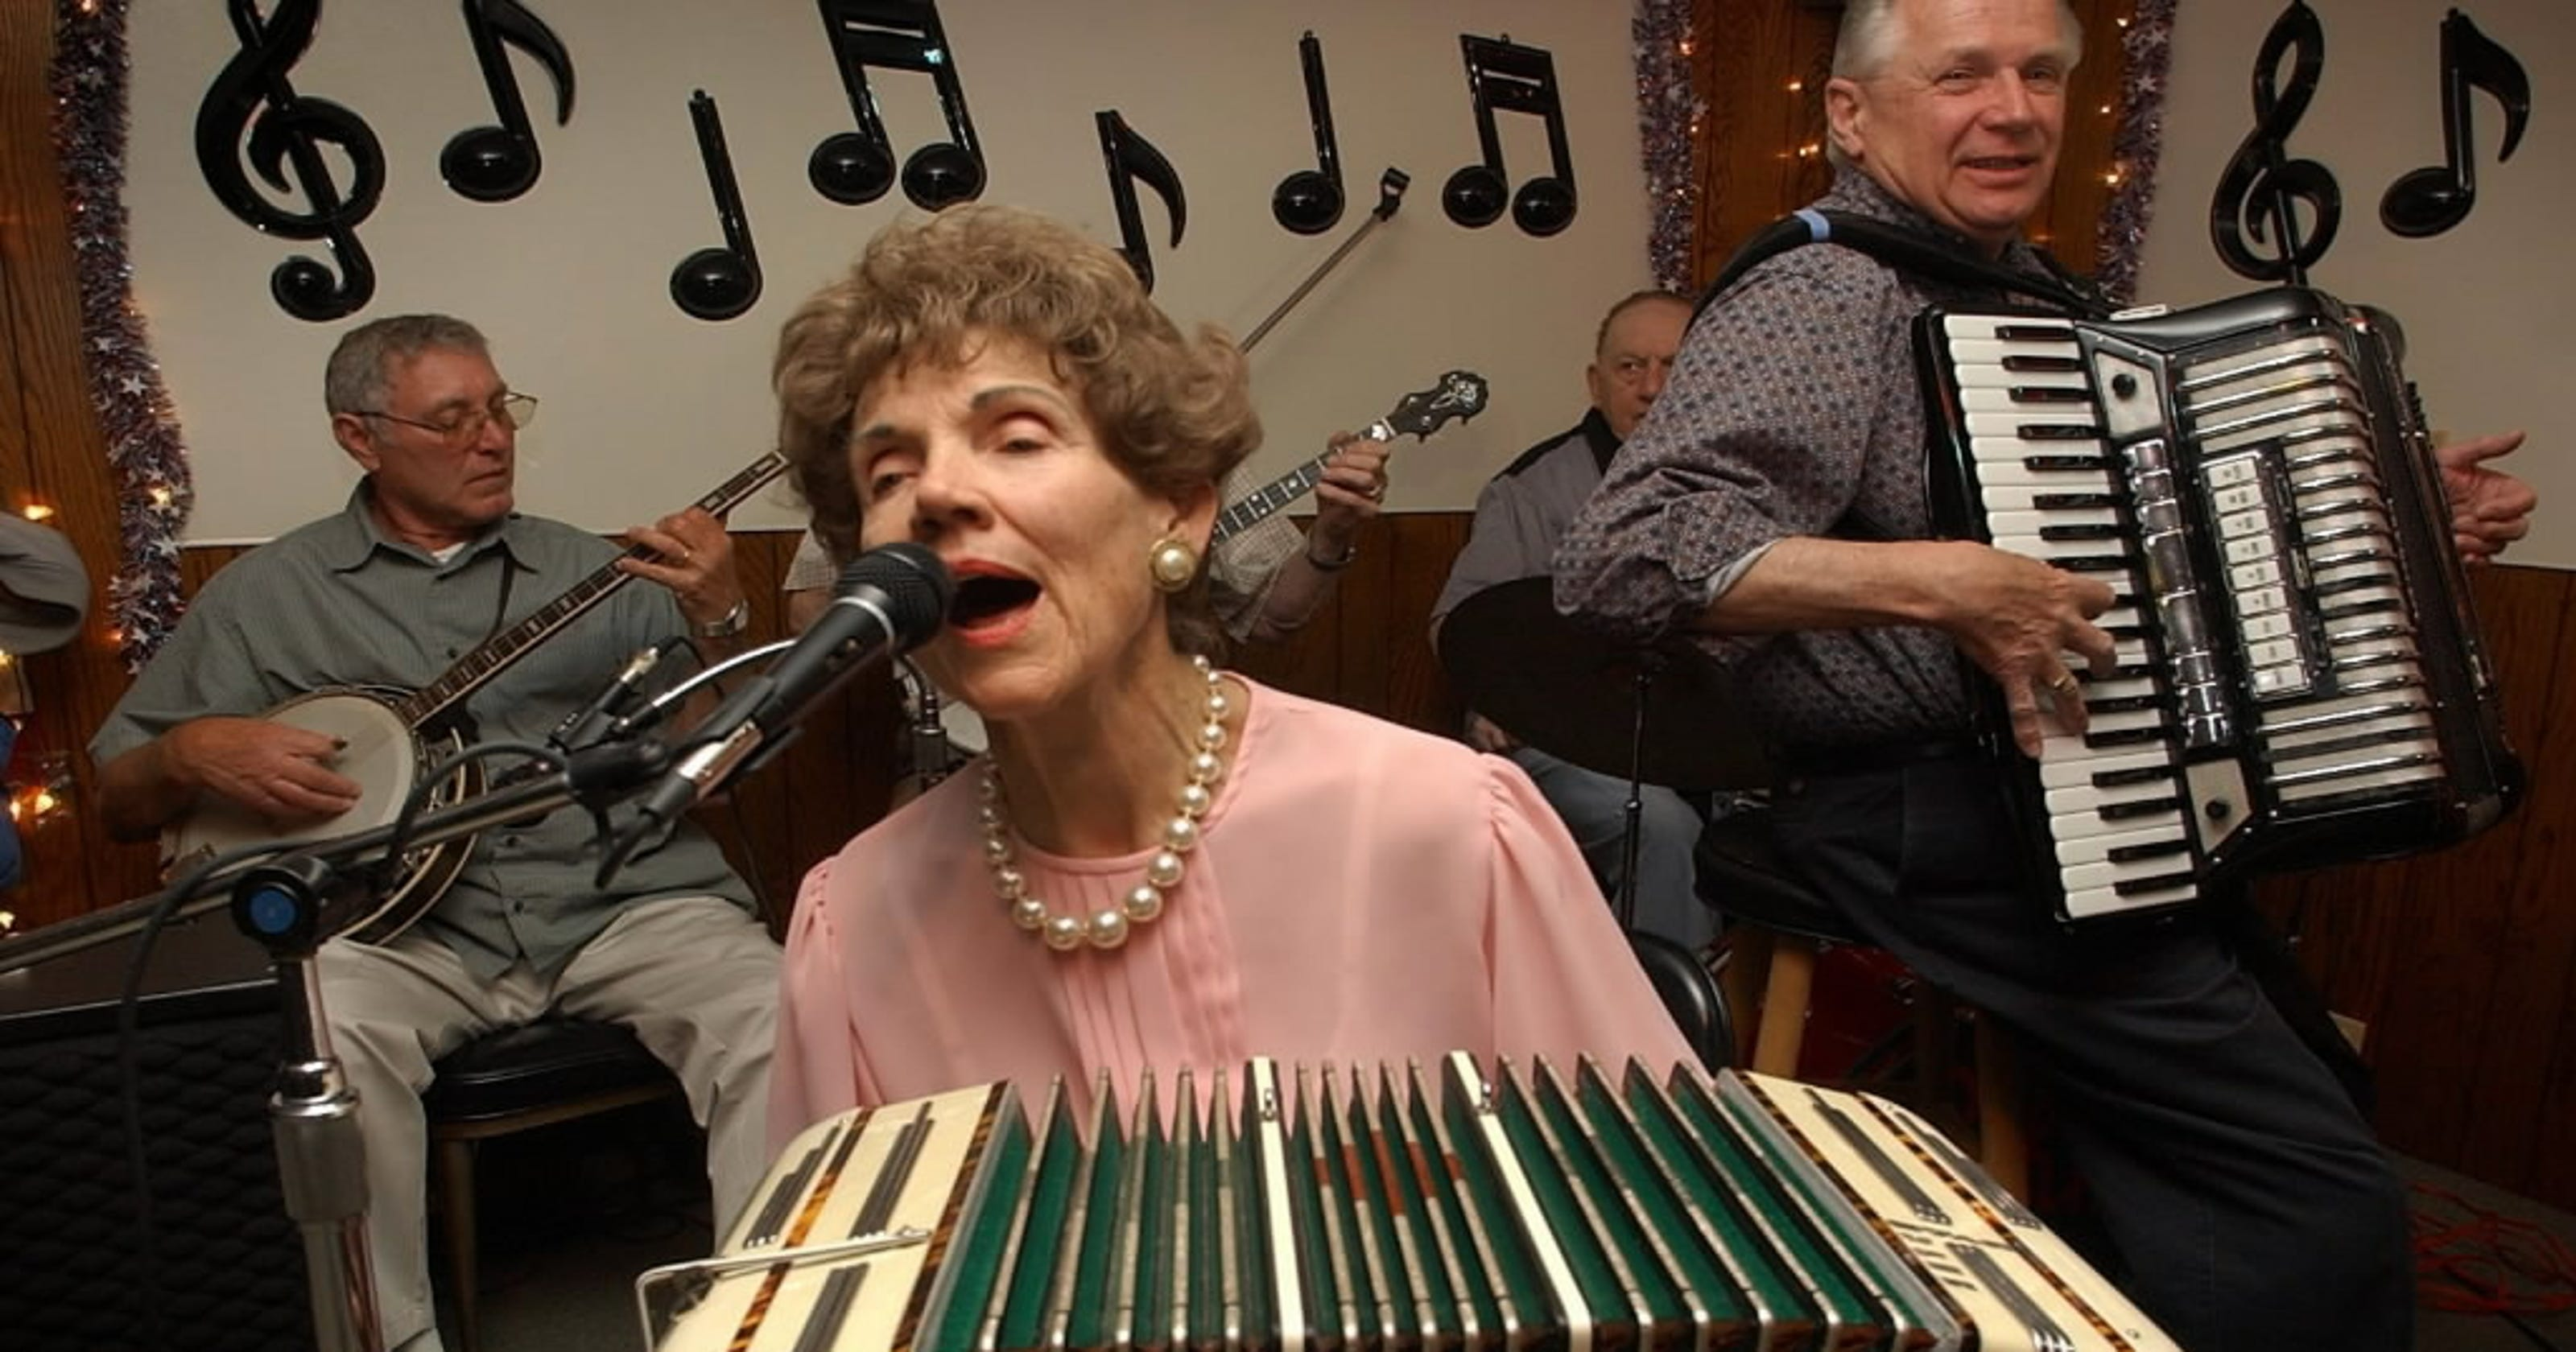 Concertina Millie was Polka Hall of Fame member